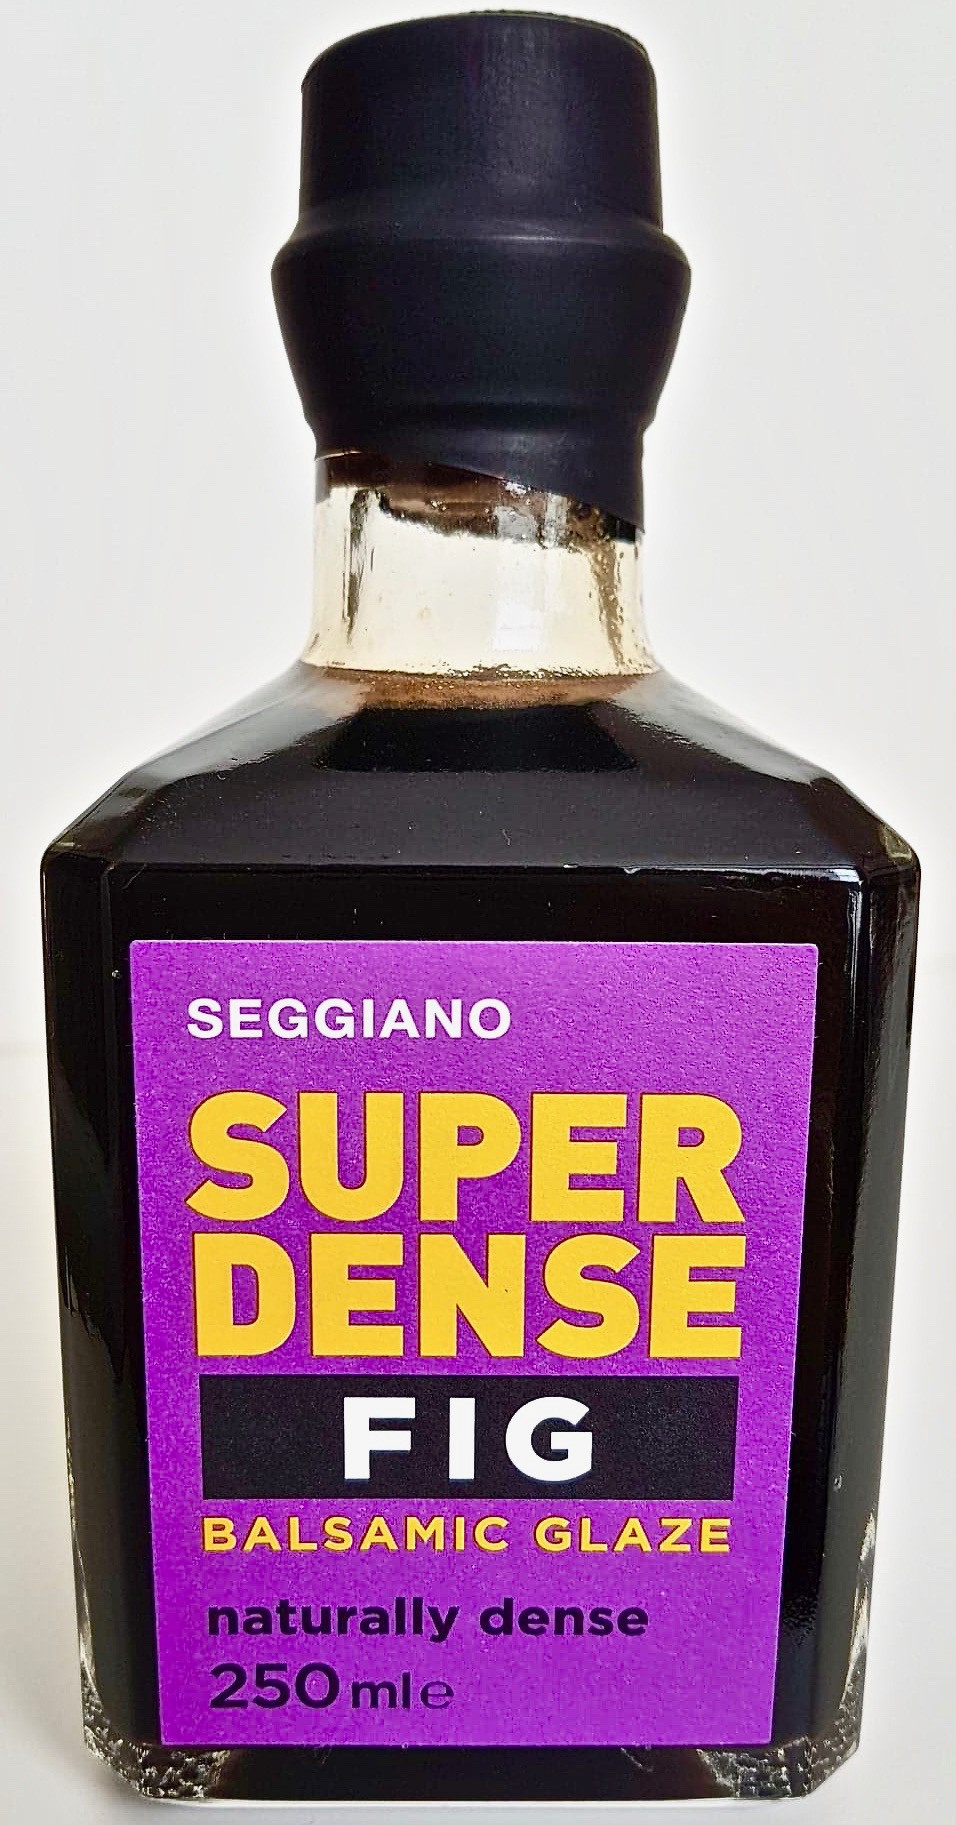 Seggiano Super Dense Fig Balsamic Glaze